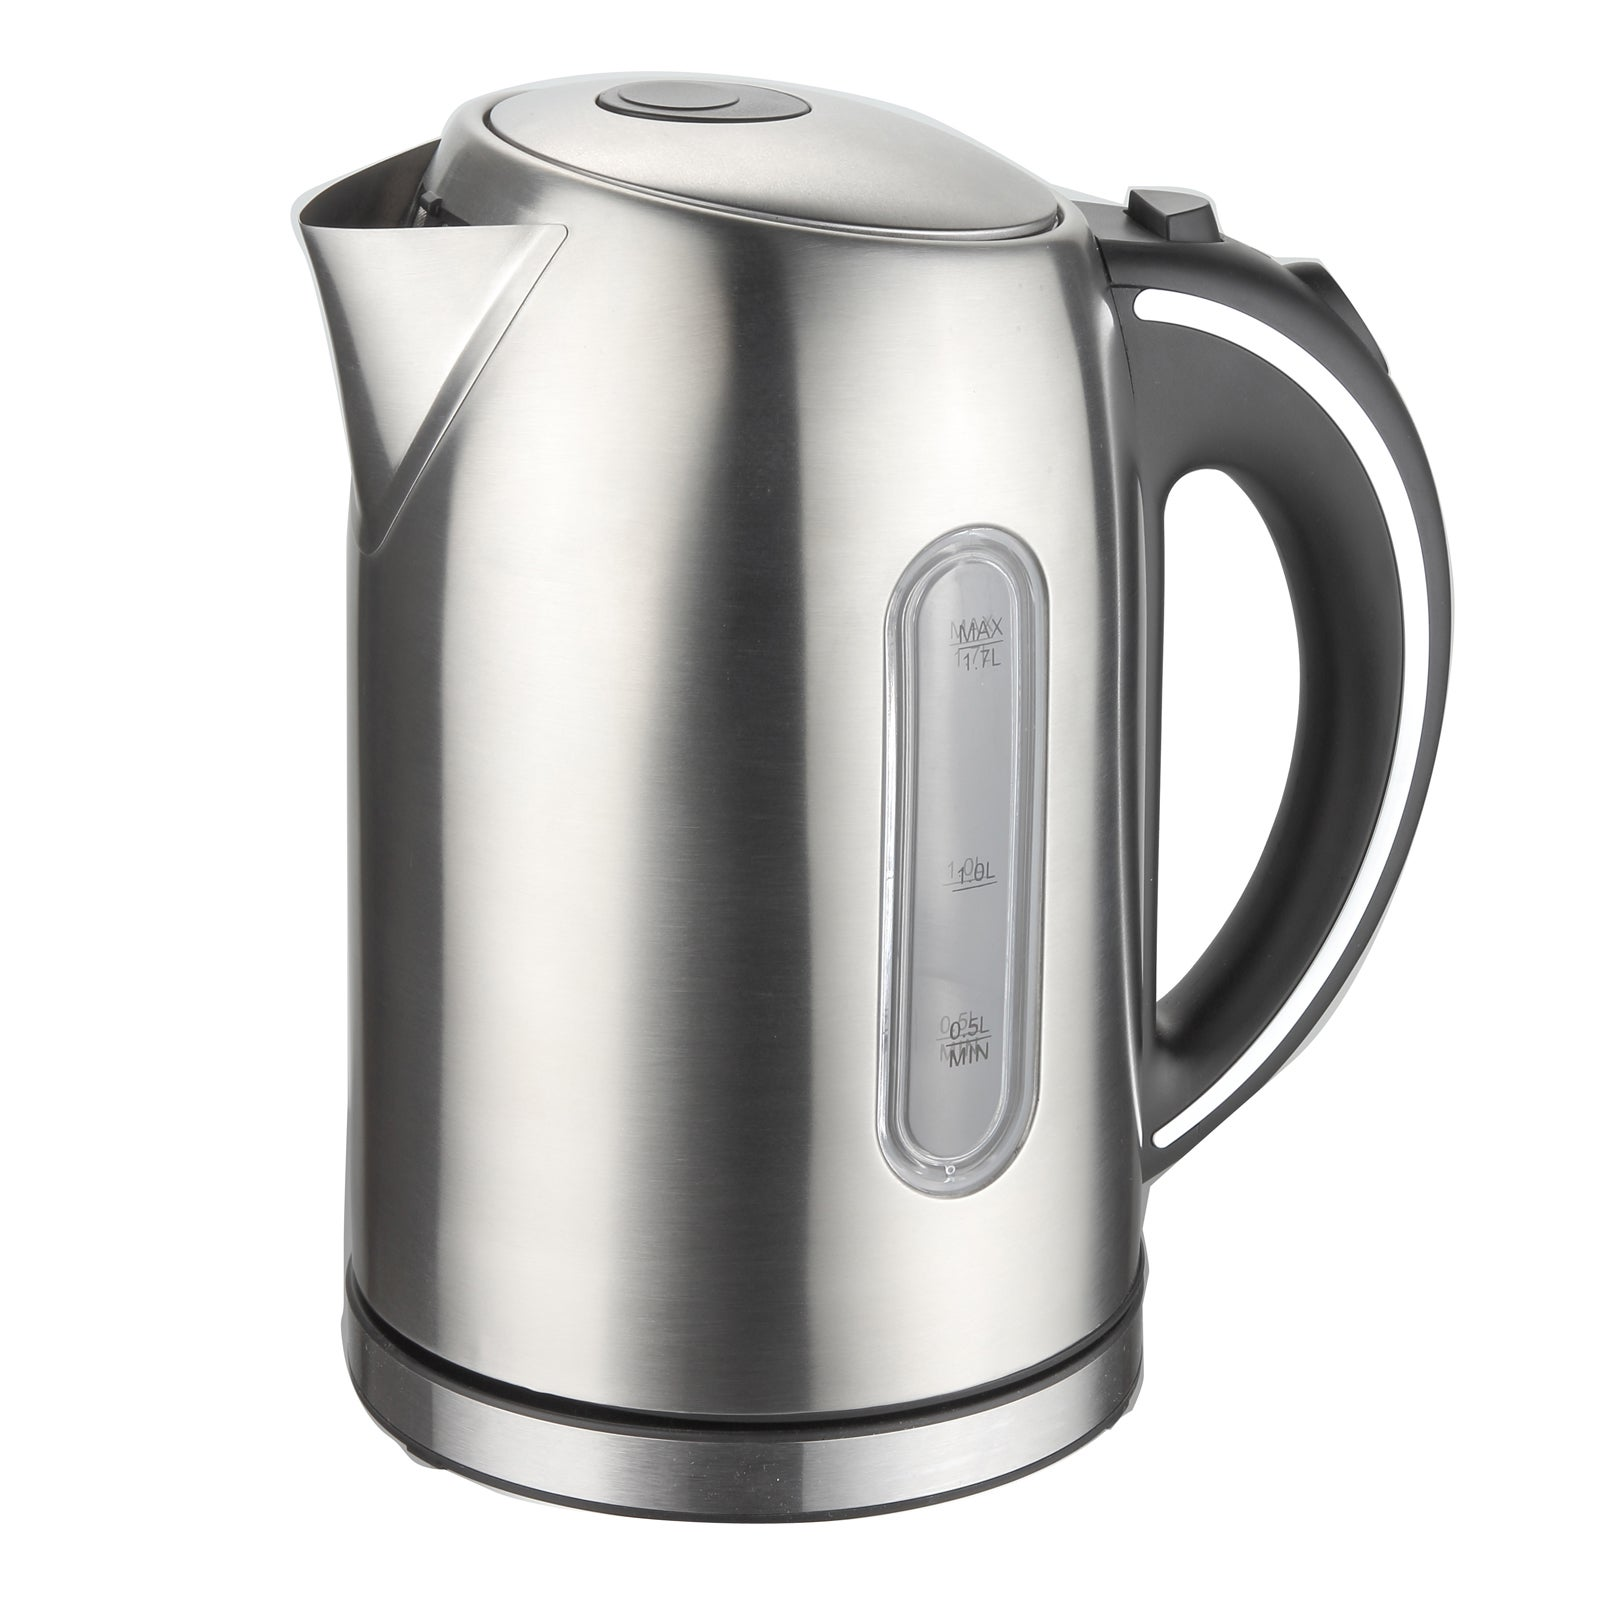 Mega Chef 1.7-liter Stainless Steel Electric Tea Kettle (...